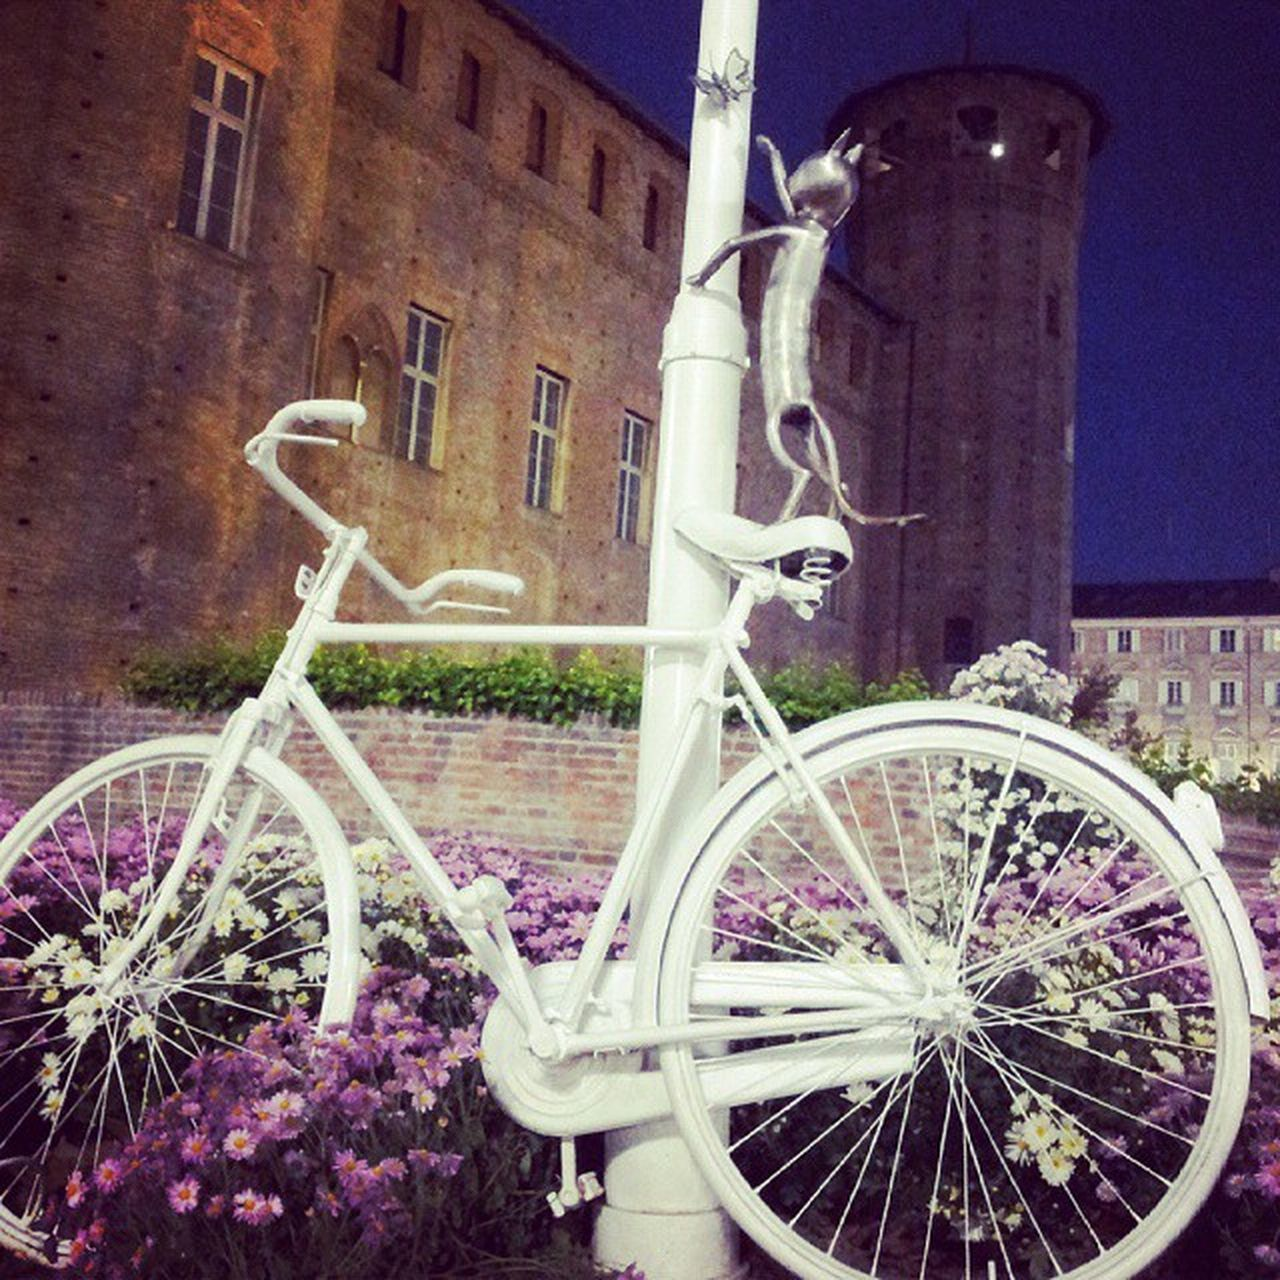 bicycle, architecture, building exterior, transportation, built structure, land vehicle, outdoors, wheel, mode of transport, no people, stationary, night, spoke, city, flower